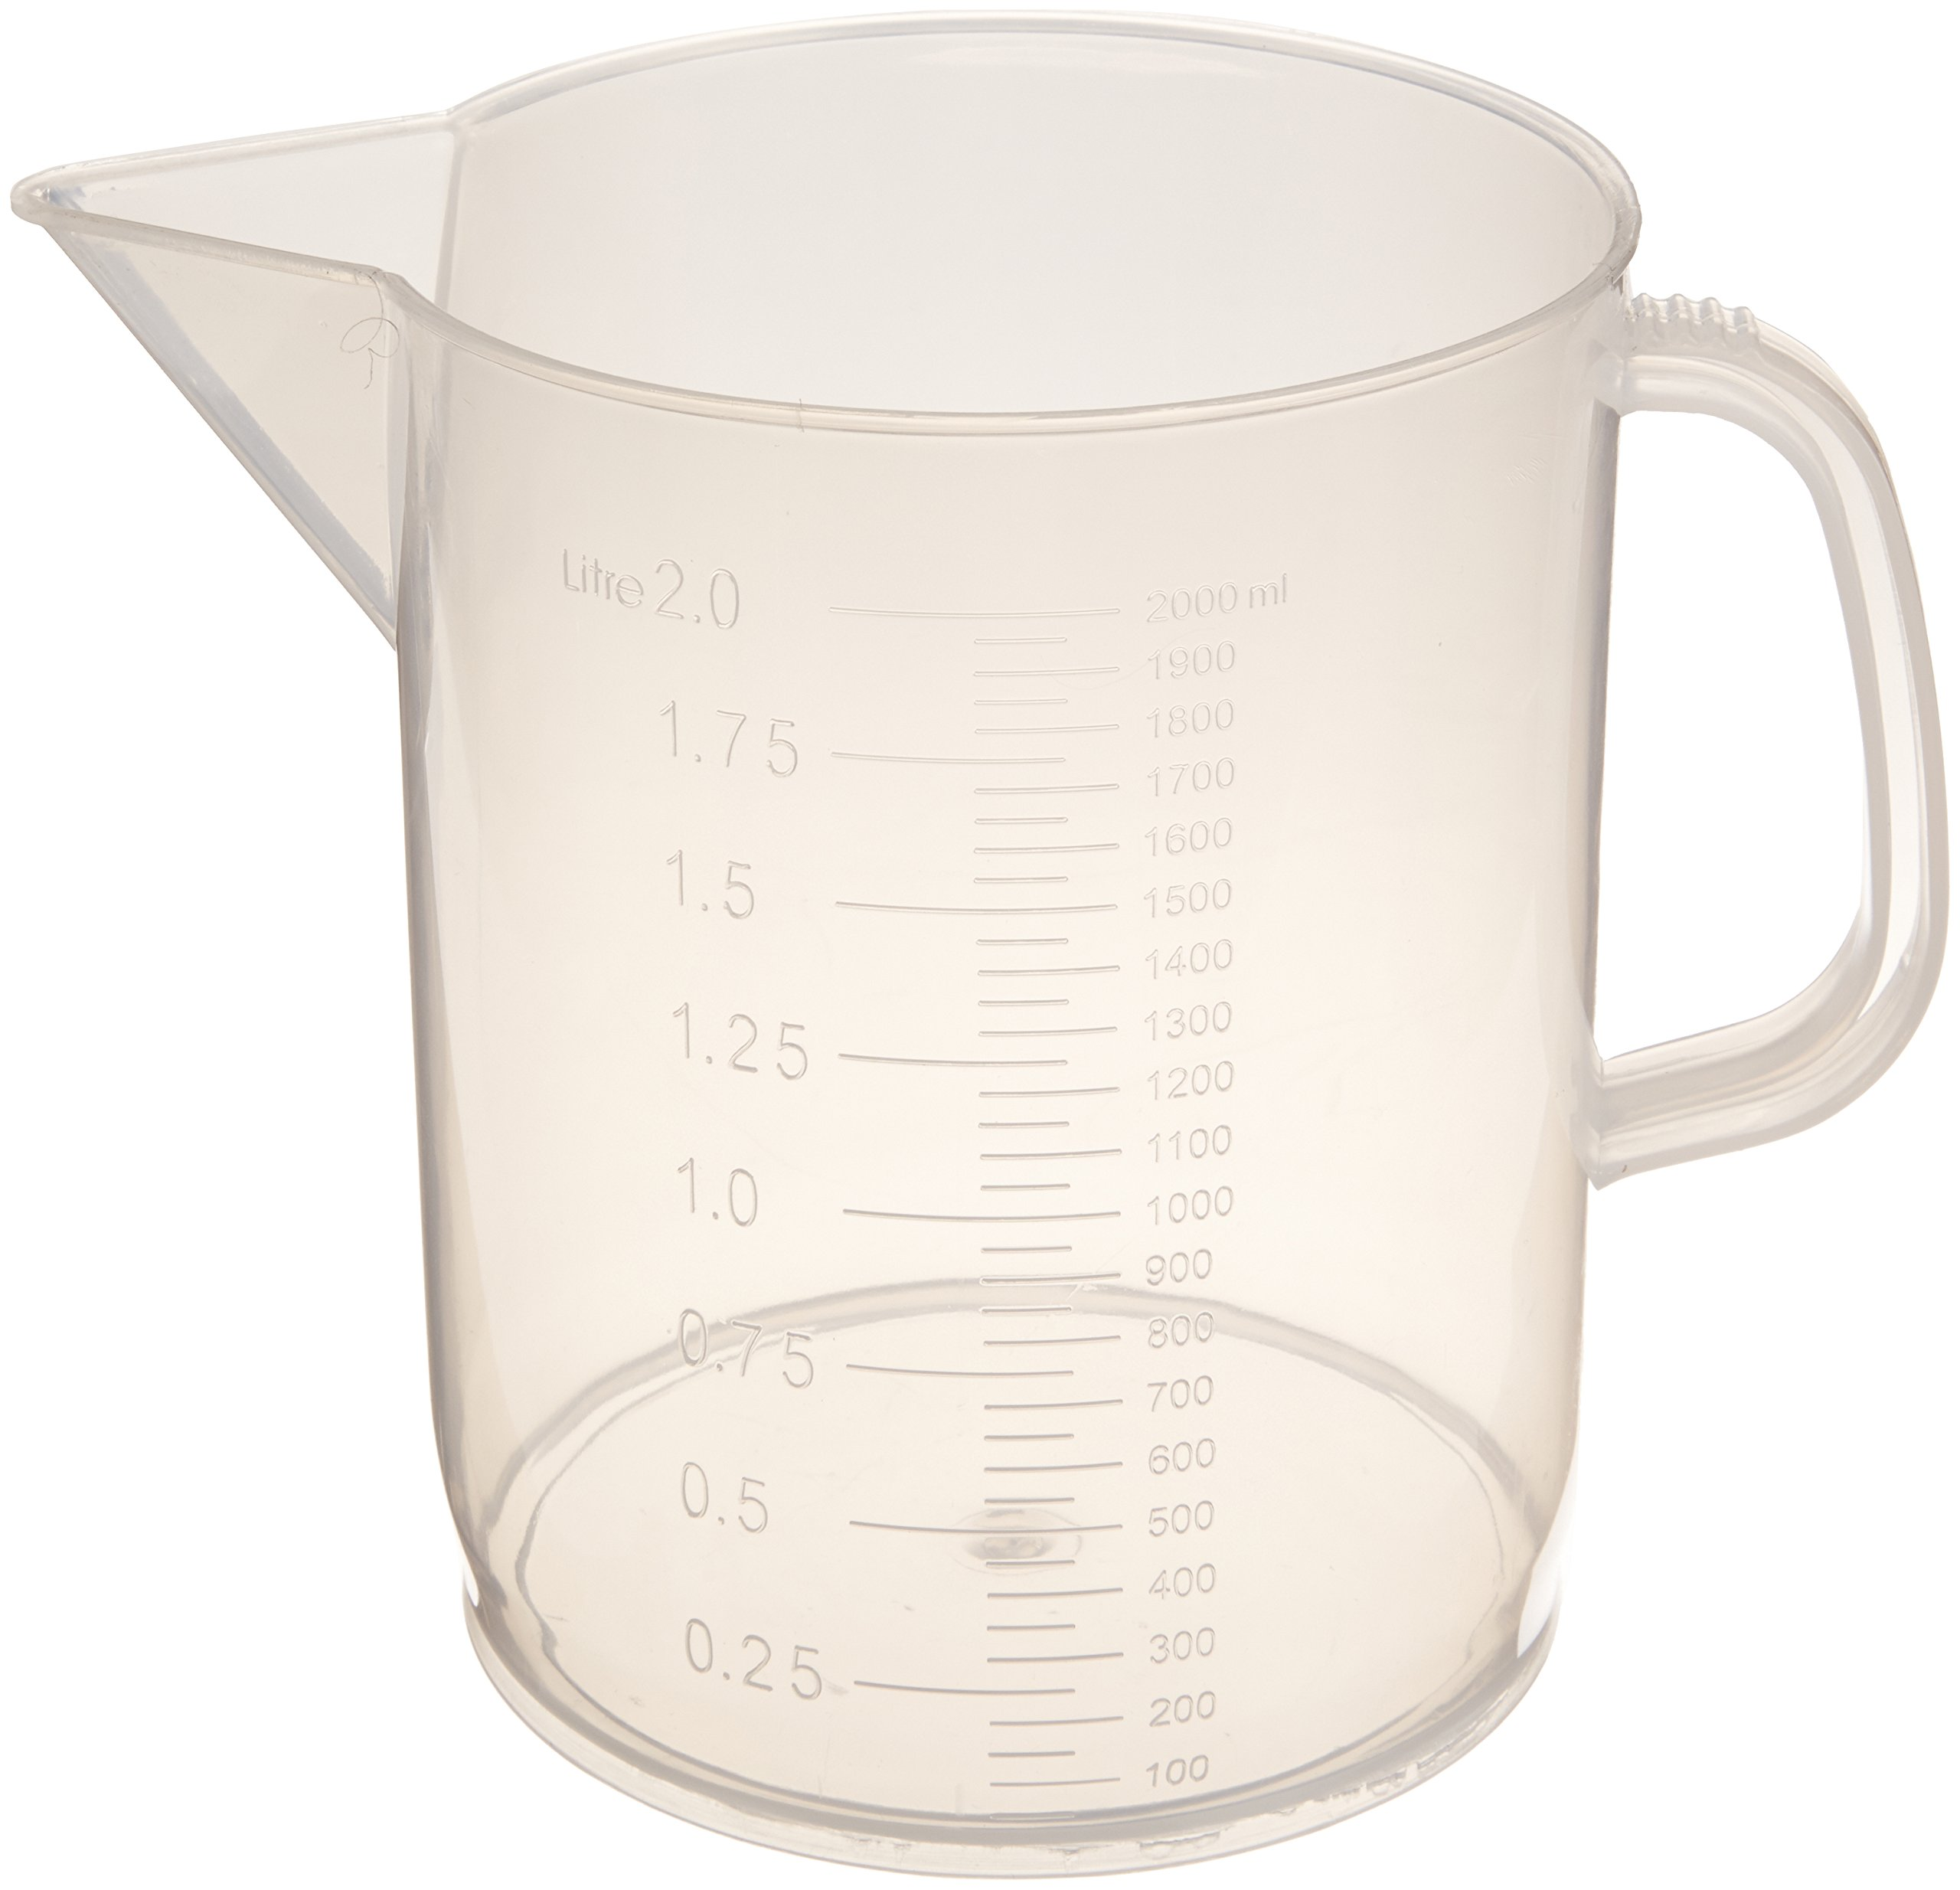 United Scientific 81123 Polypropylene Short Form Pitchers, 2000ml Capacity (Pack of 6) by United Scientific Supplies